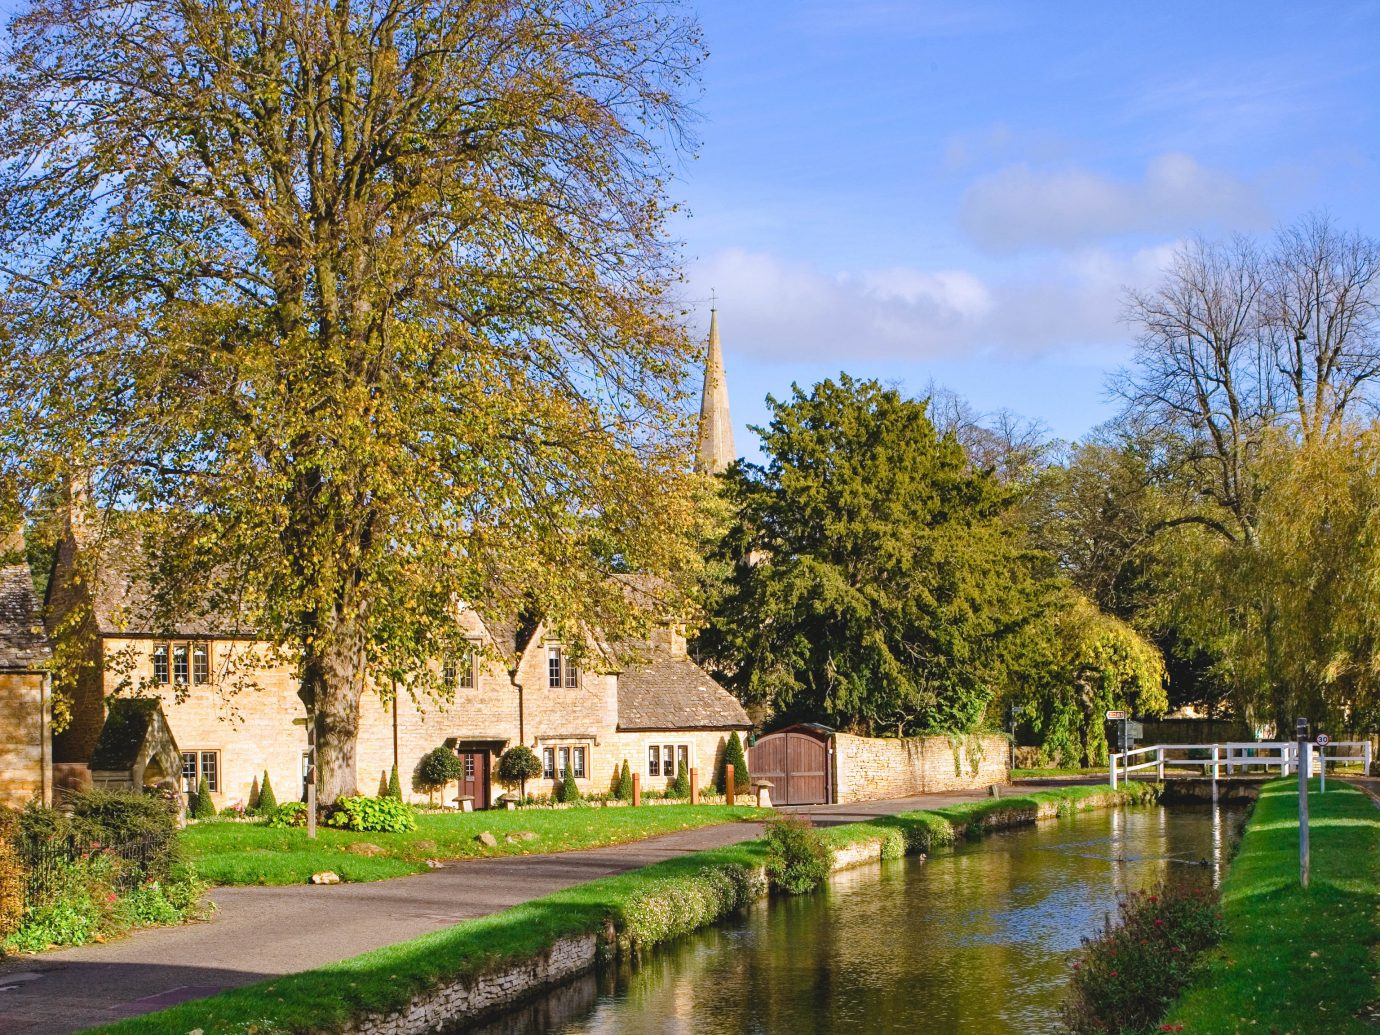 Romance Trip Ideas Weekend Getaways tree outdoor grass waterway water reflection Nature leaf Canal plant estate sky house bank pond River real estate Garden national trust for places of historic interest or natural beauty landscape park Lake watercourse autumn spring château Village City lacustrine plain stately home surrounded